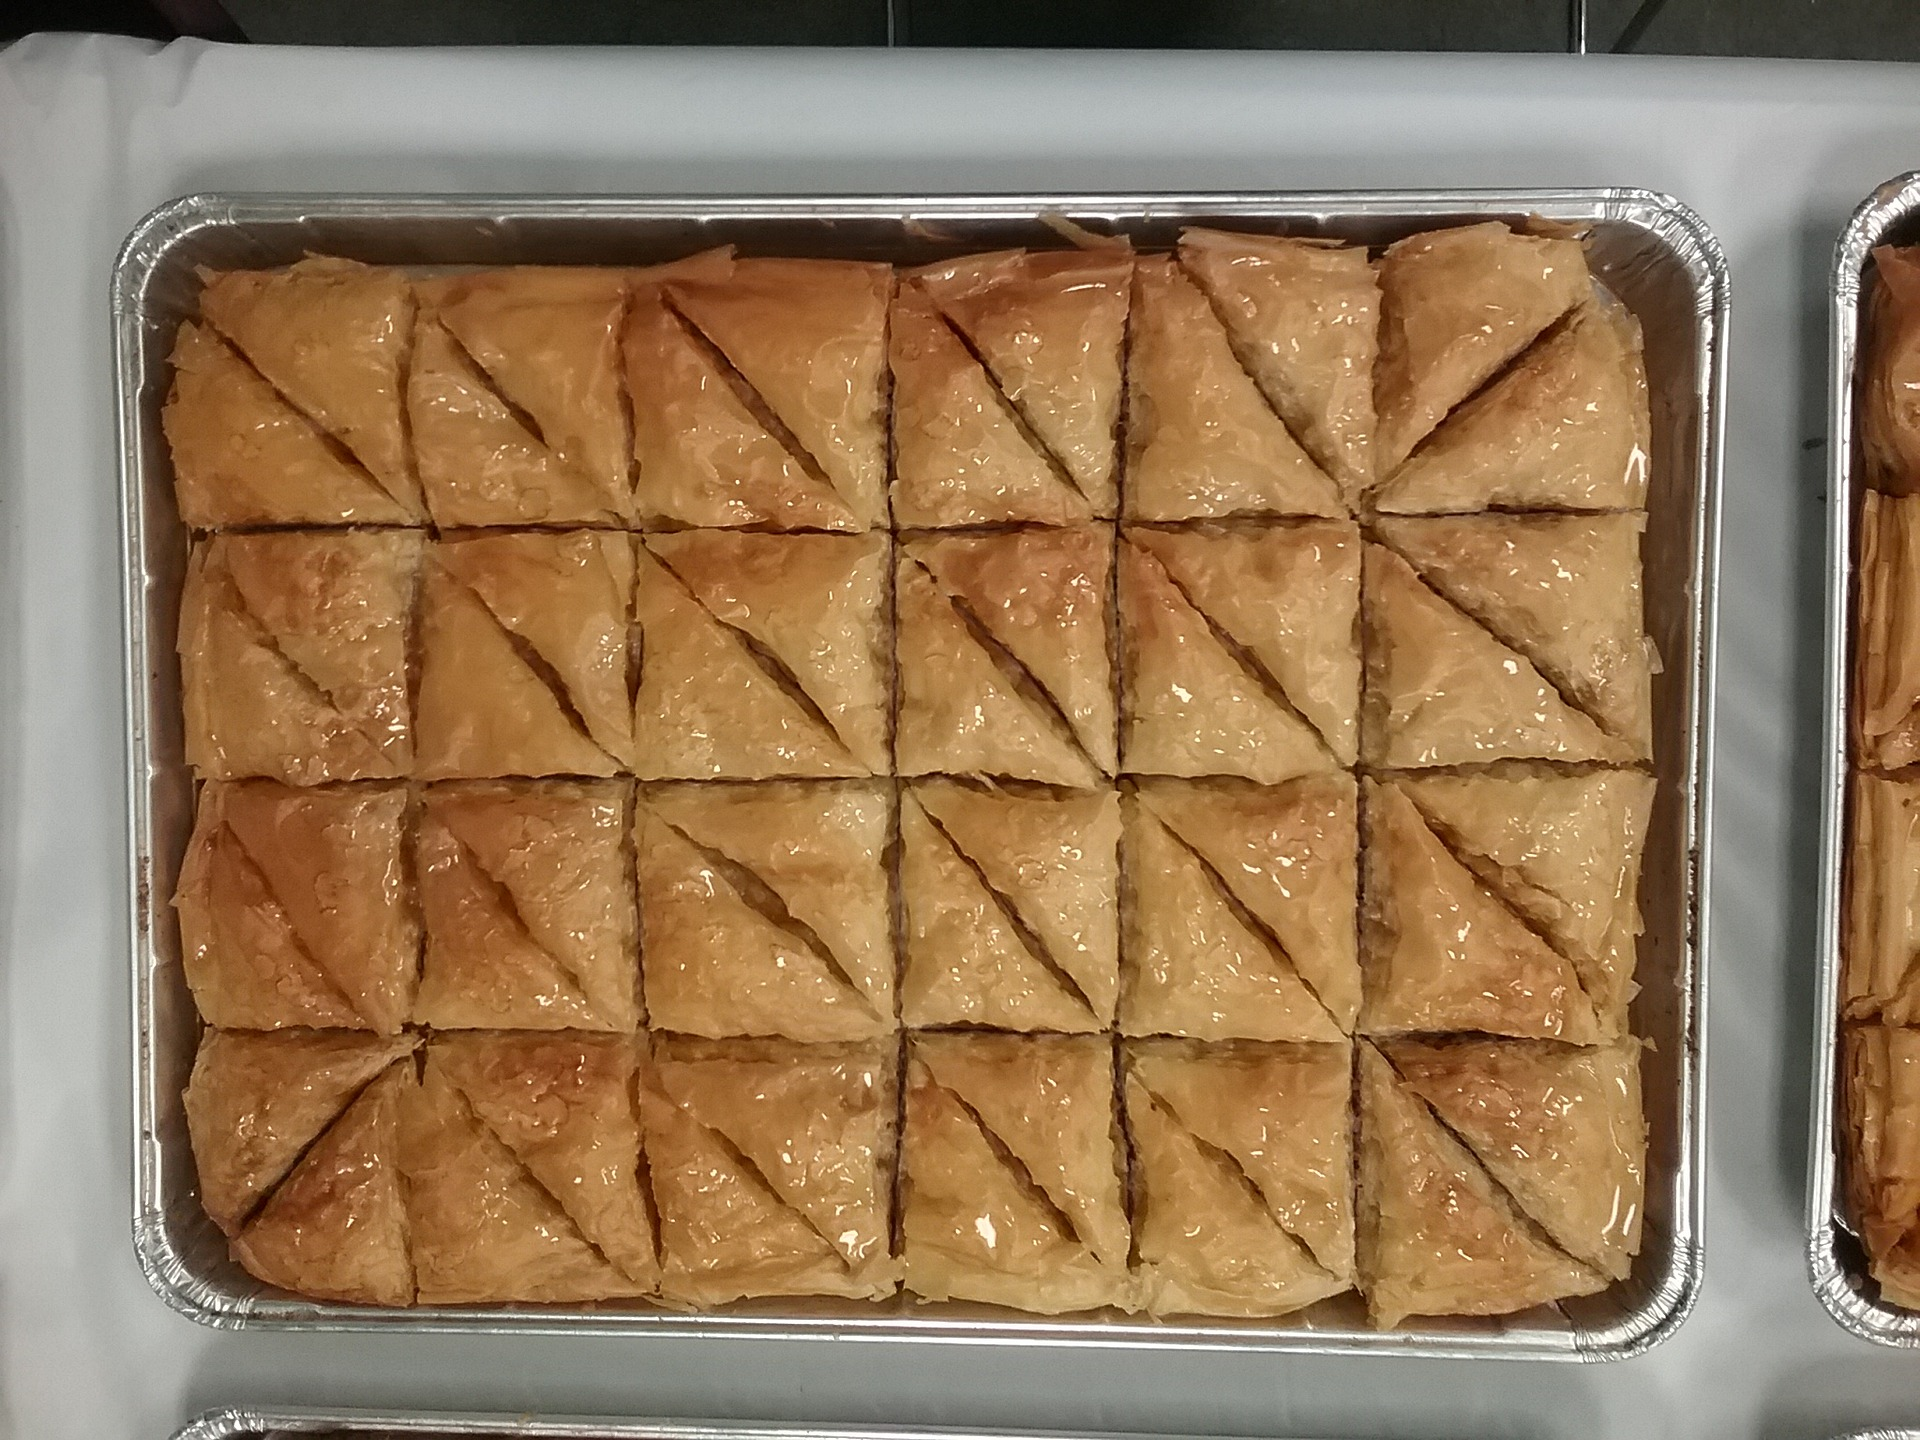 Jake and Telly's Catering: full tray of baklava